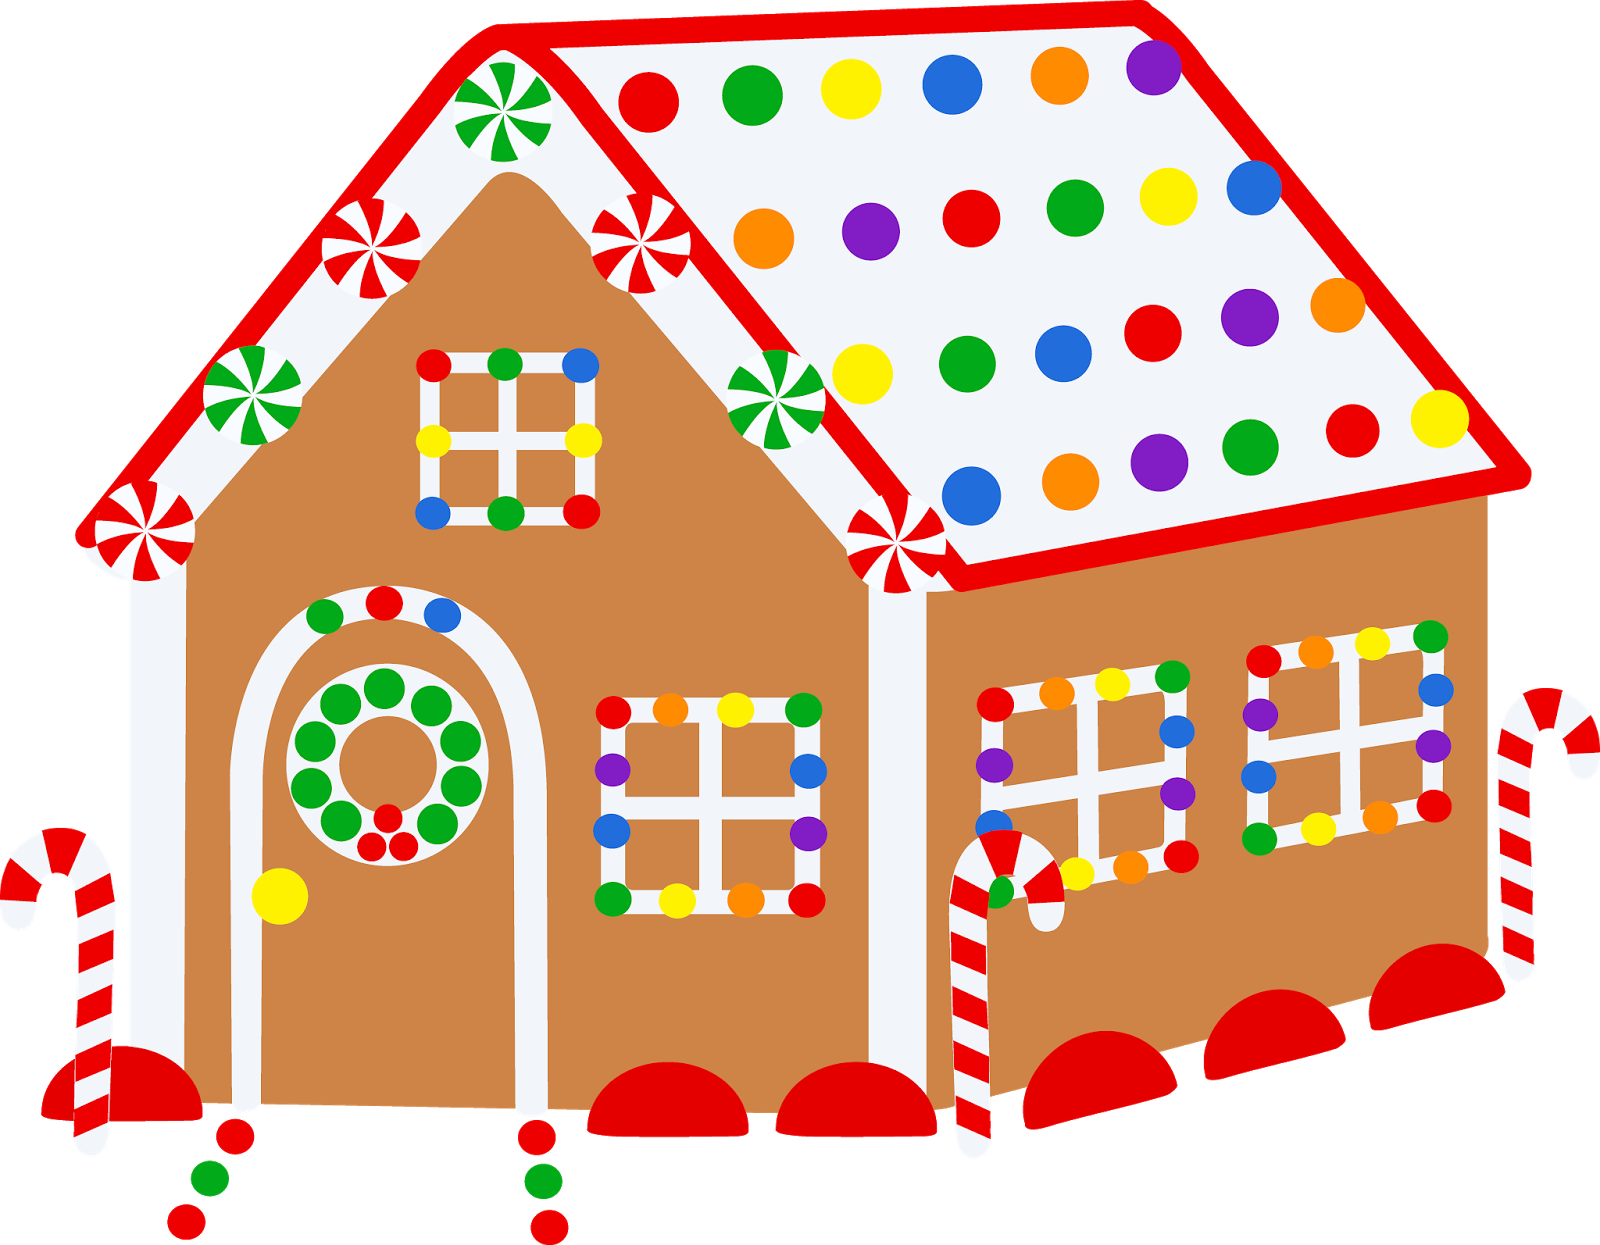 Graham cracker gingerbread house clipart clipart library ForgetMeNot: Christmas cakes Gingerbread House clipart library